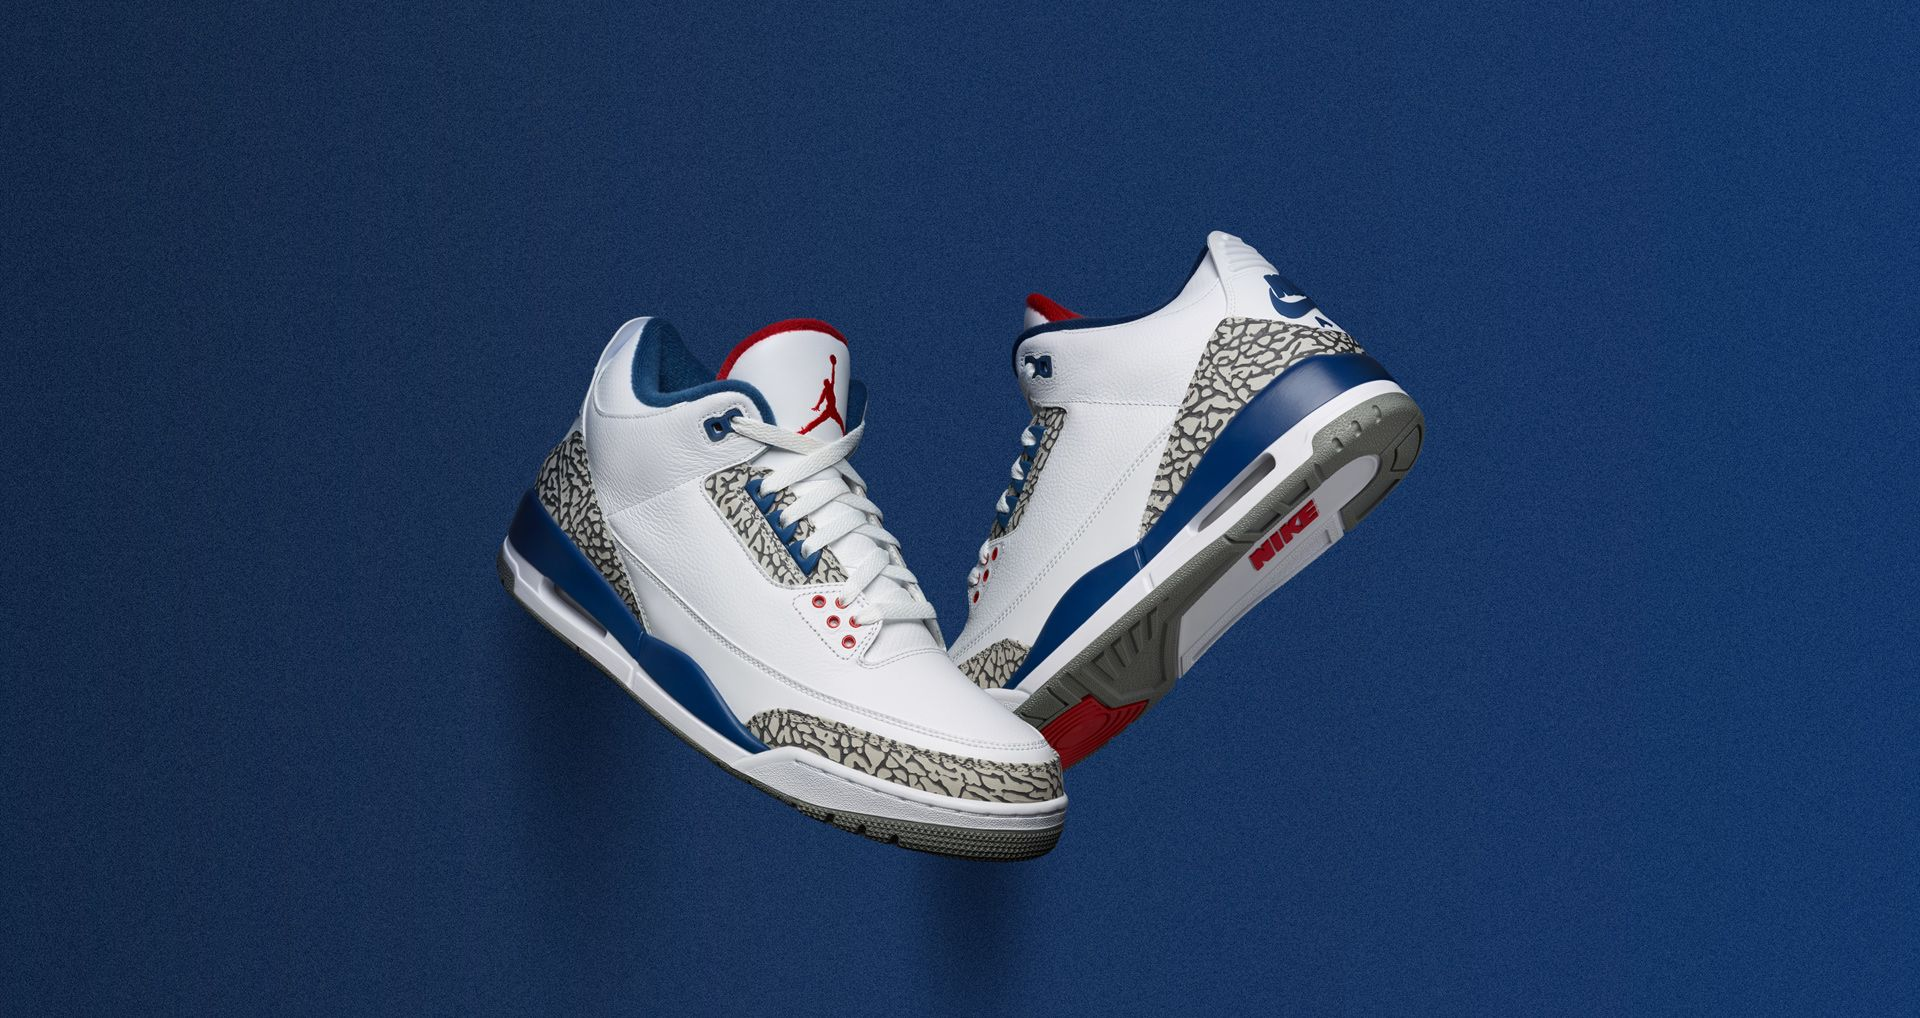 79c89801d2a280 Air Jordan 3 Retro OG  White   Cement Grey   Blue . Nike⁠+ SNKRS